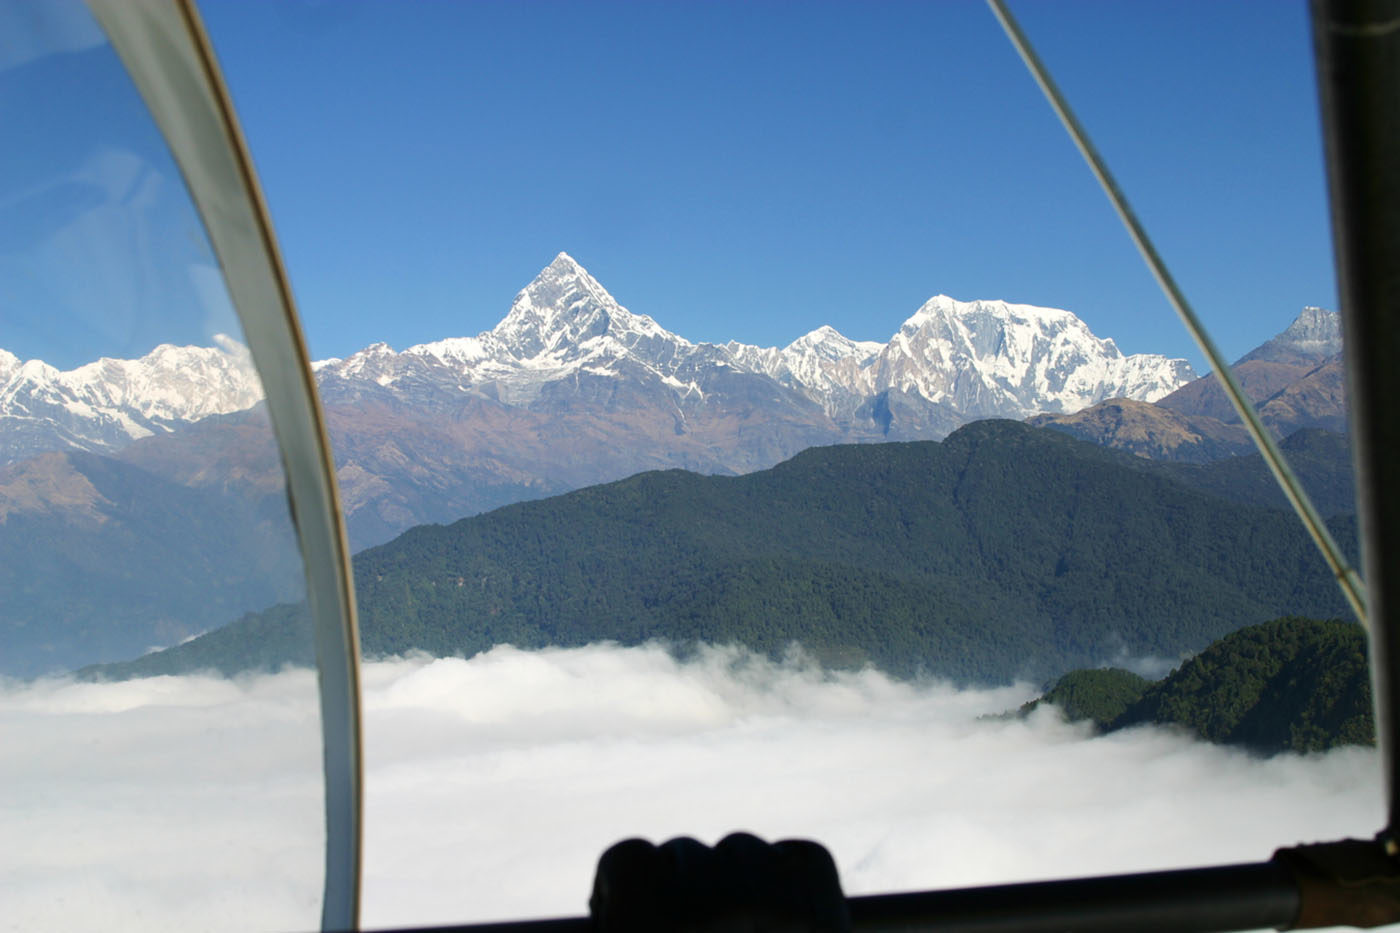 Microlight flight around Annapurna: High as a Kite